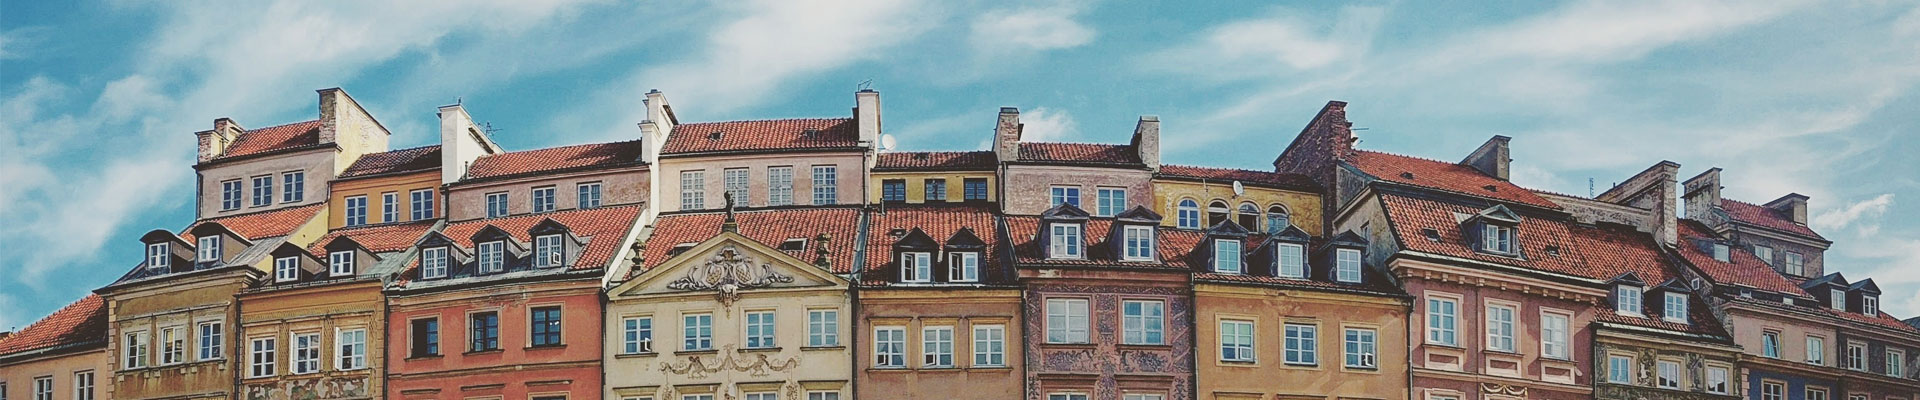 Colourful buildings in Poland